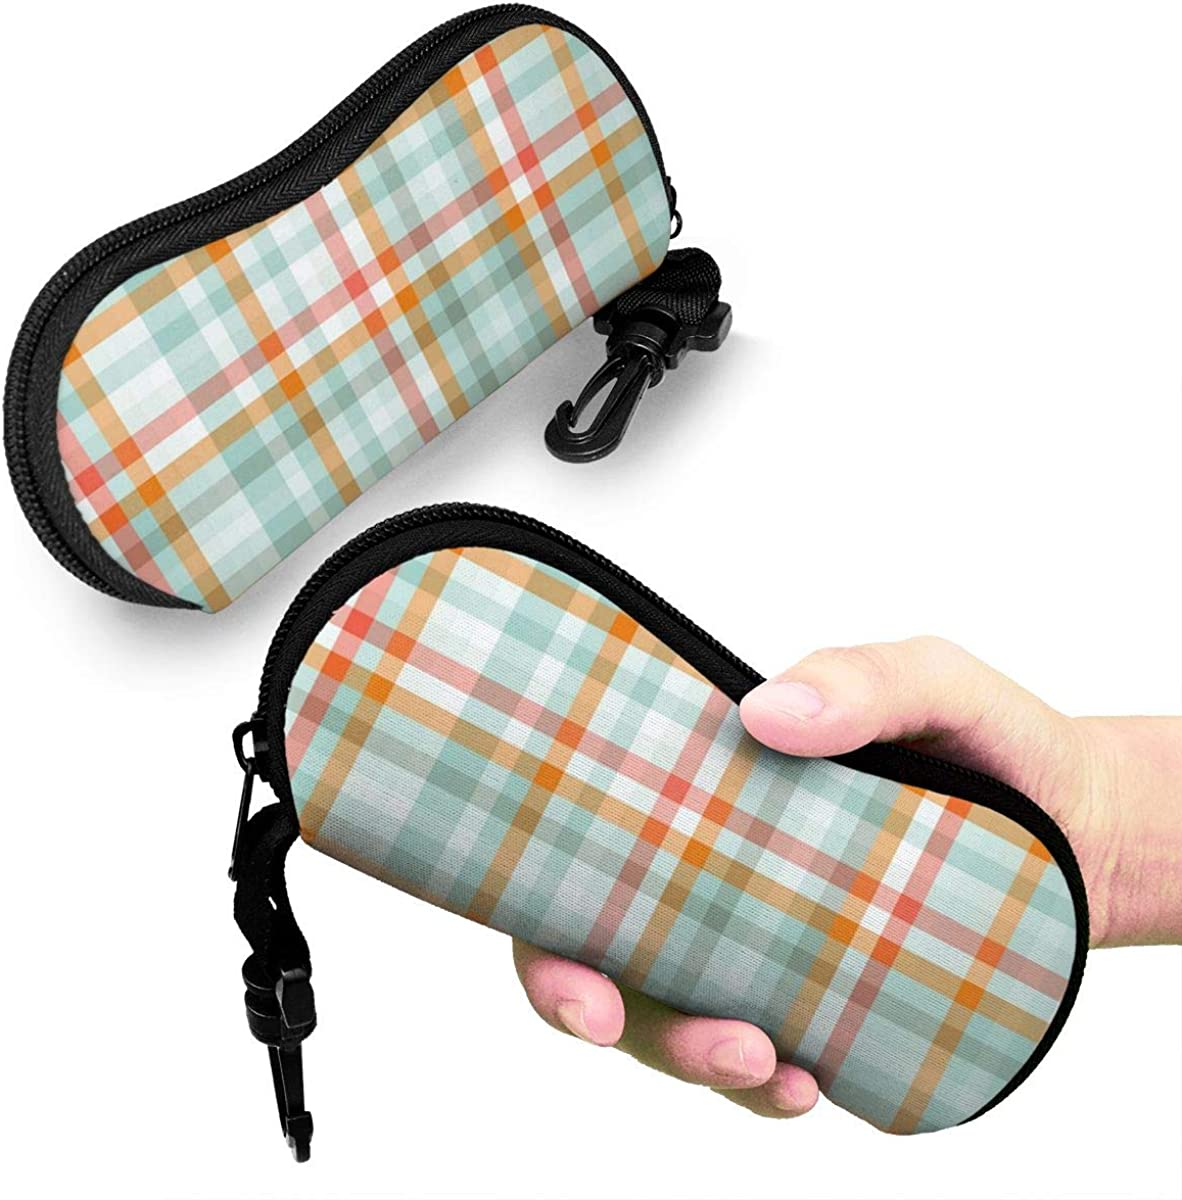 Eyeglass Case Retro Orange Striped Blue Plaid Background Ultra Light Neoprene Protective Case For Glasses And Sunglasses Width 6.7inch Height 3.1inch